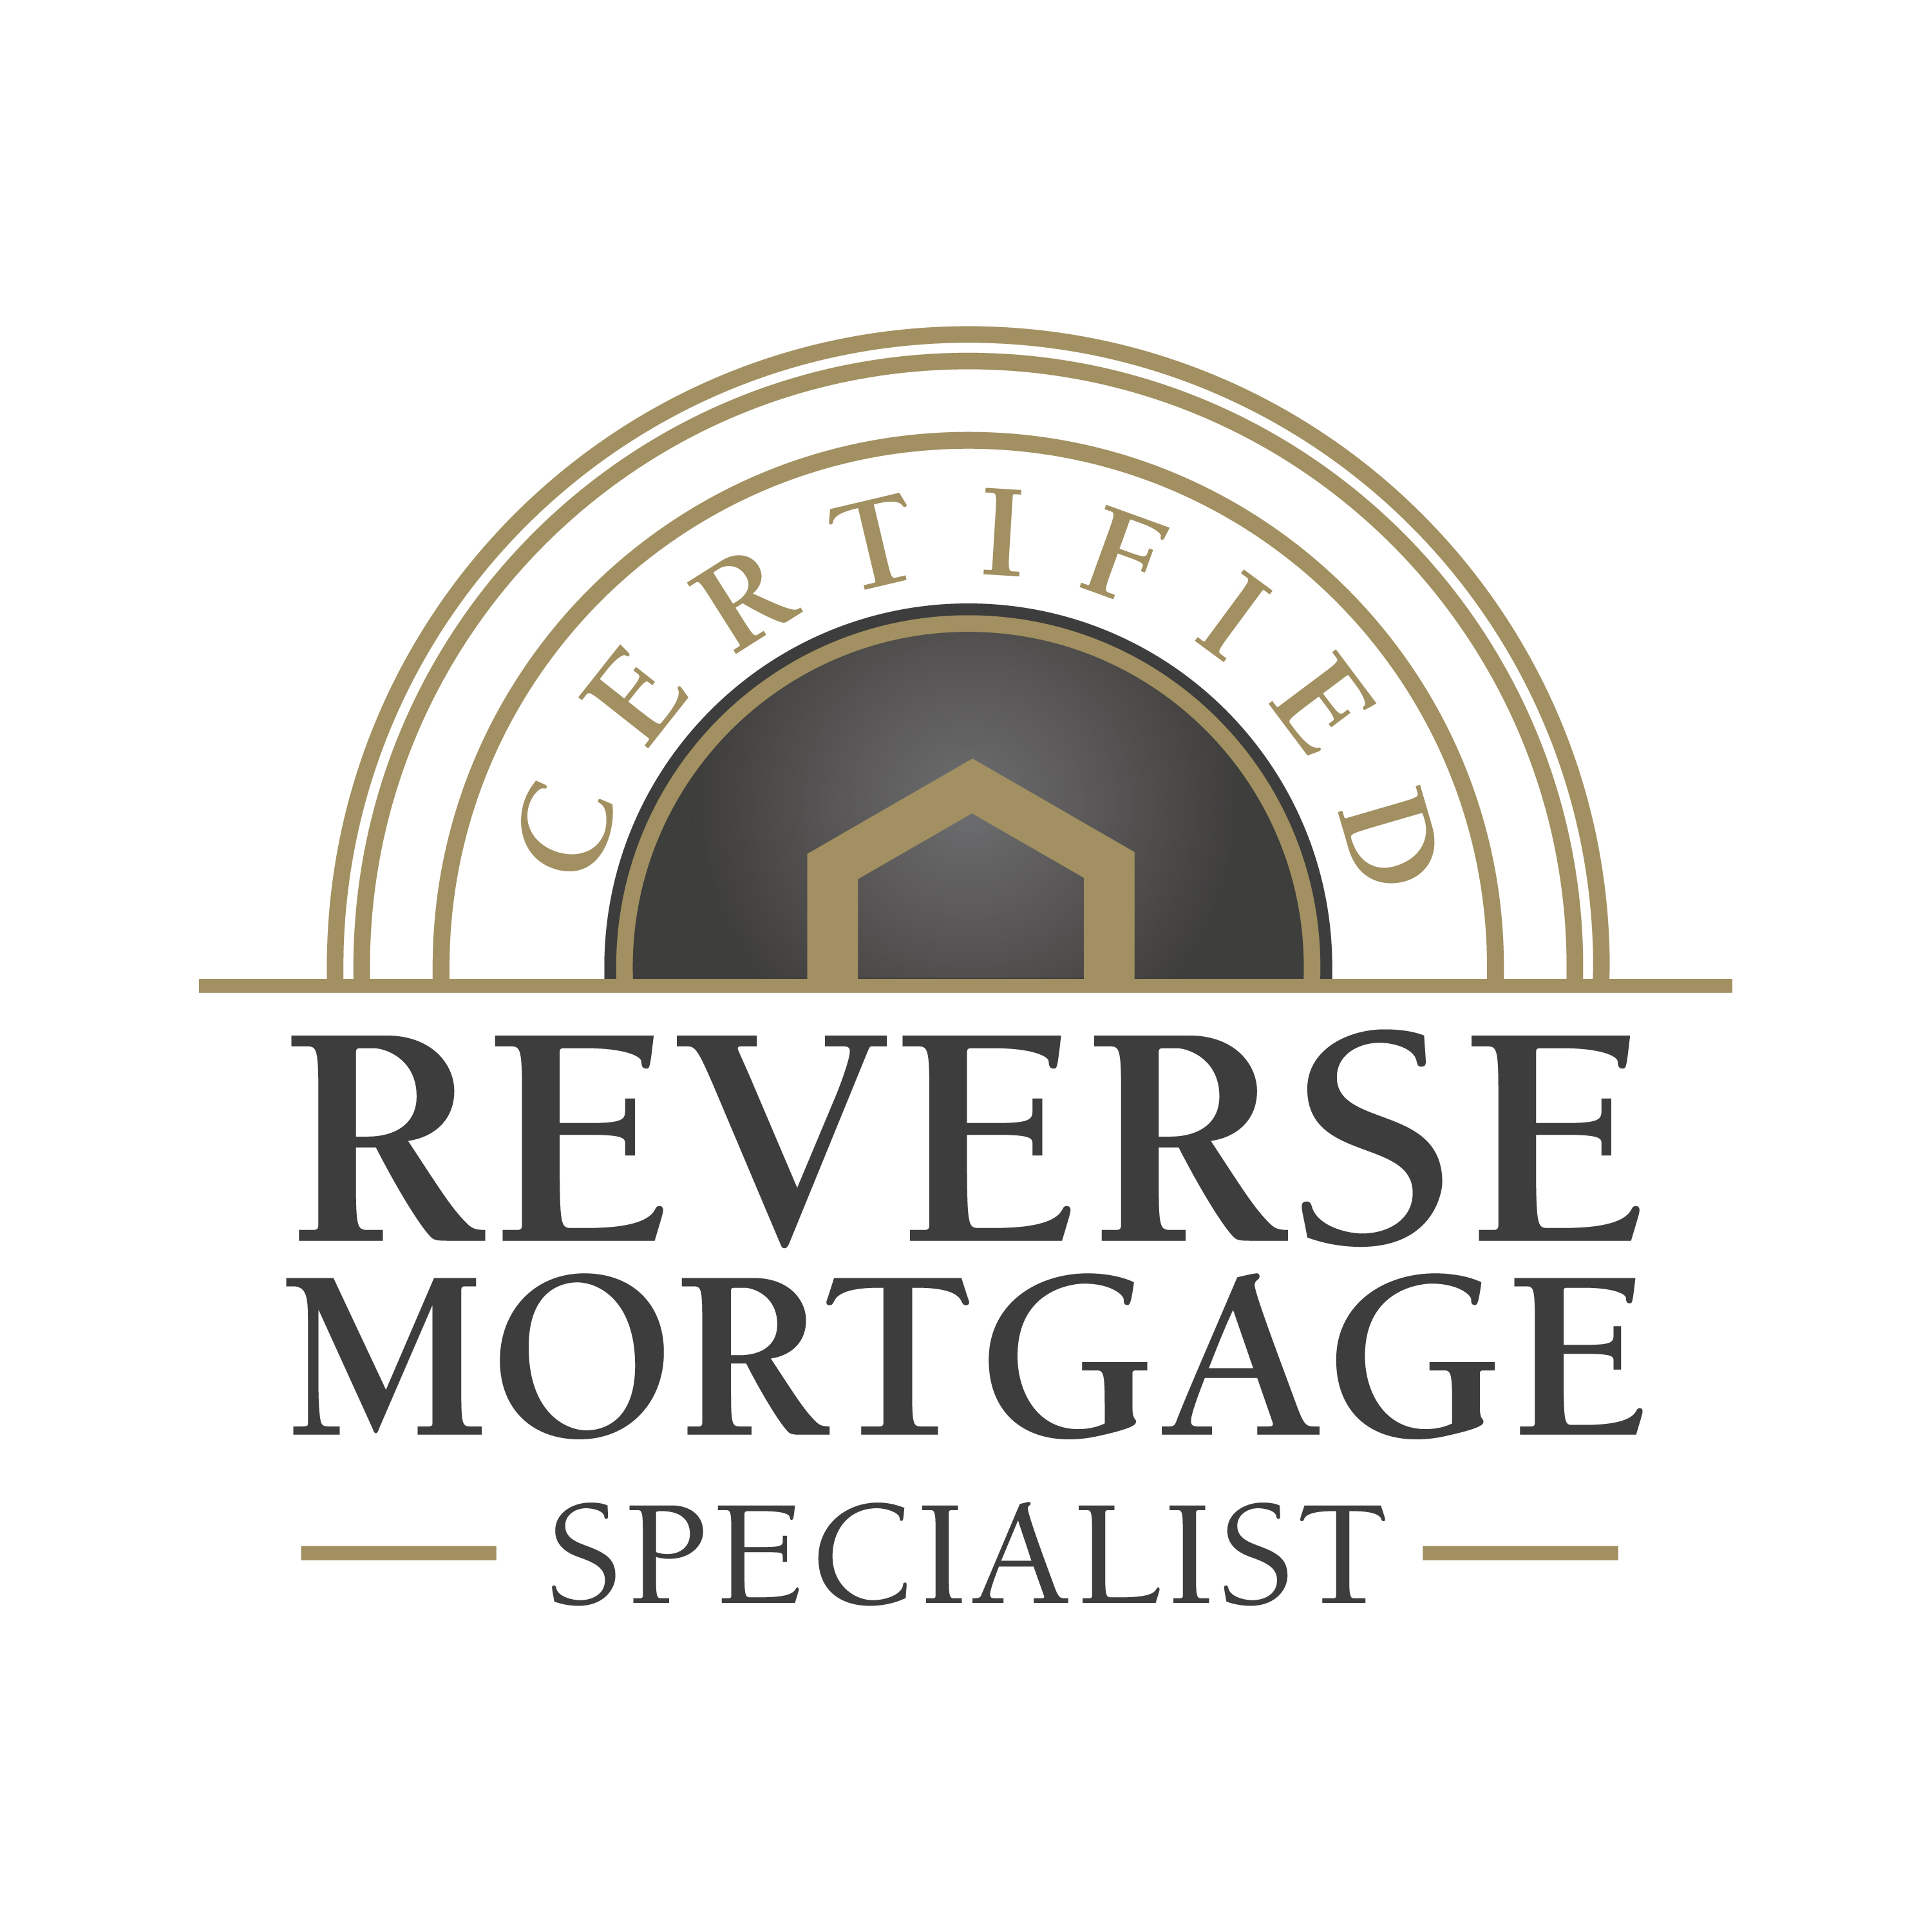 CHIP Rerverse Mortgage Specialist